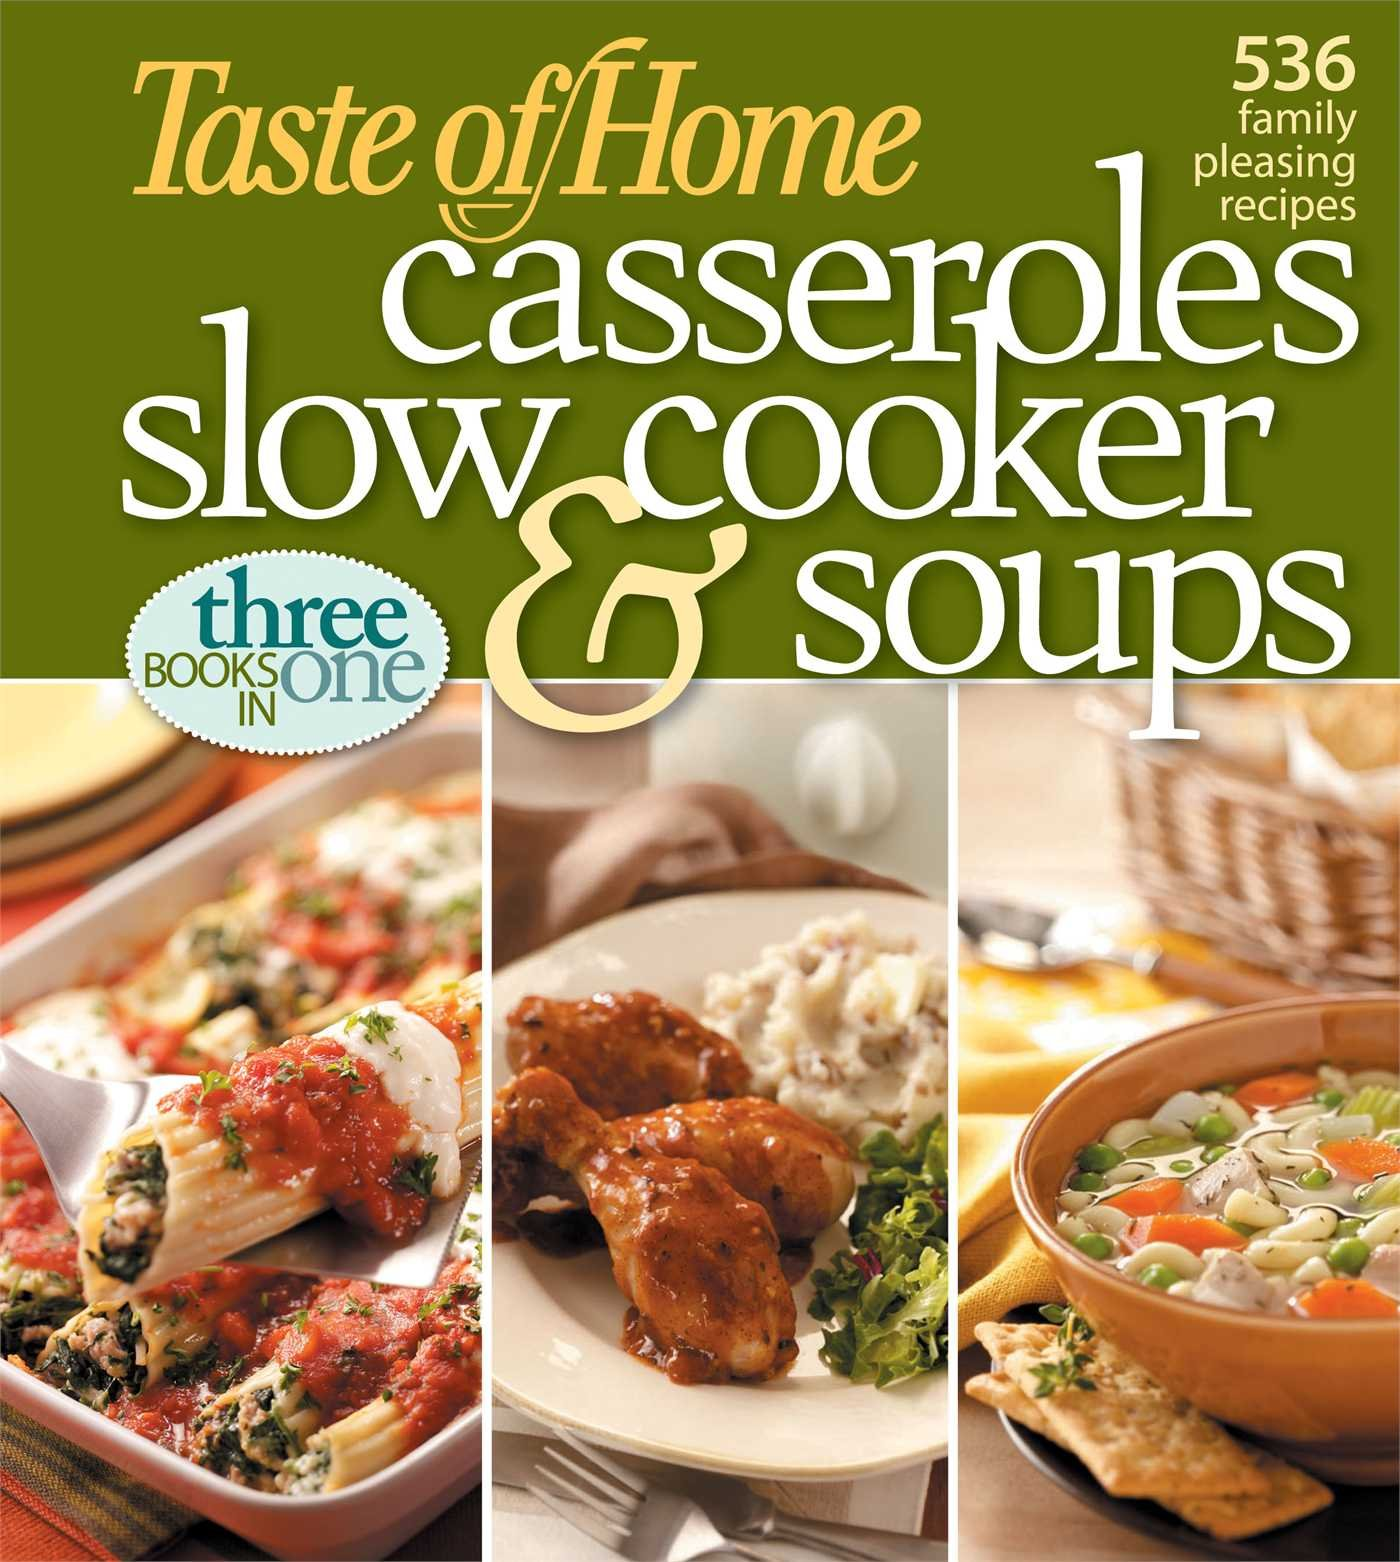 TASTE OF HOME: CASSEROLES, SLOW COOKER AND SOUPS